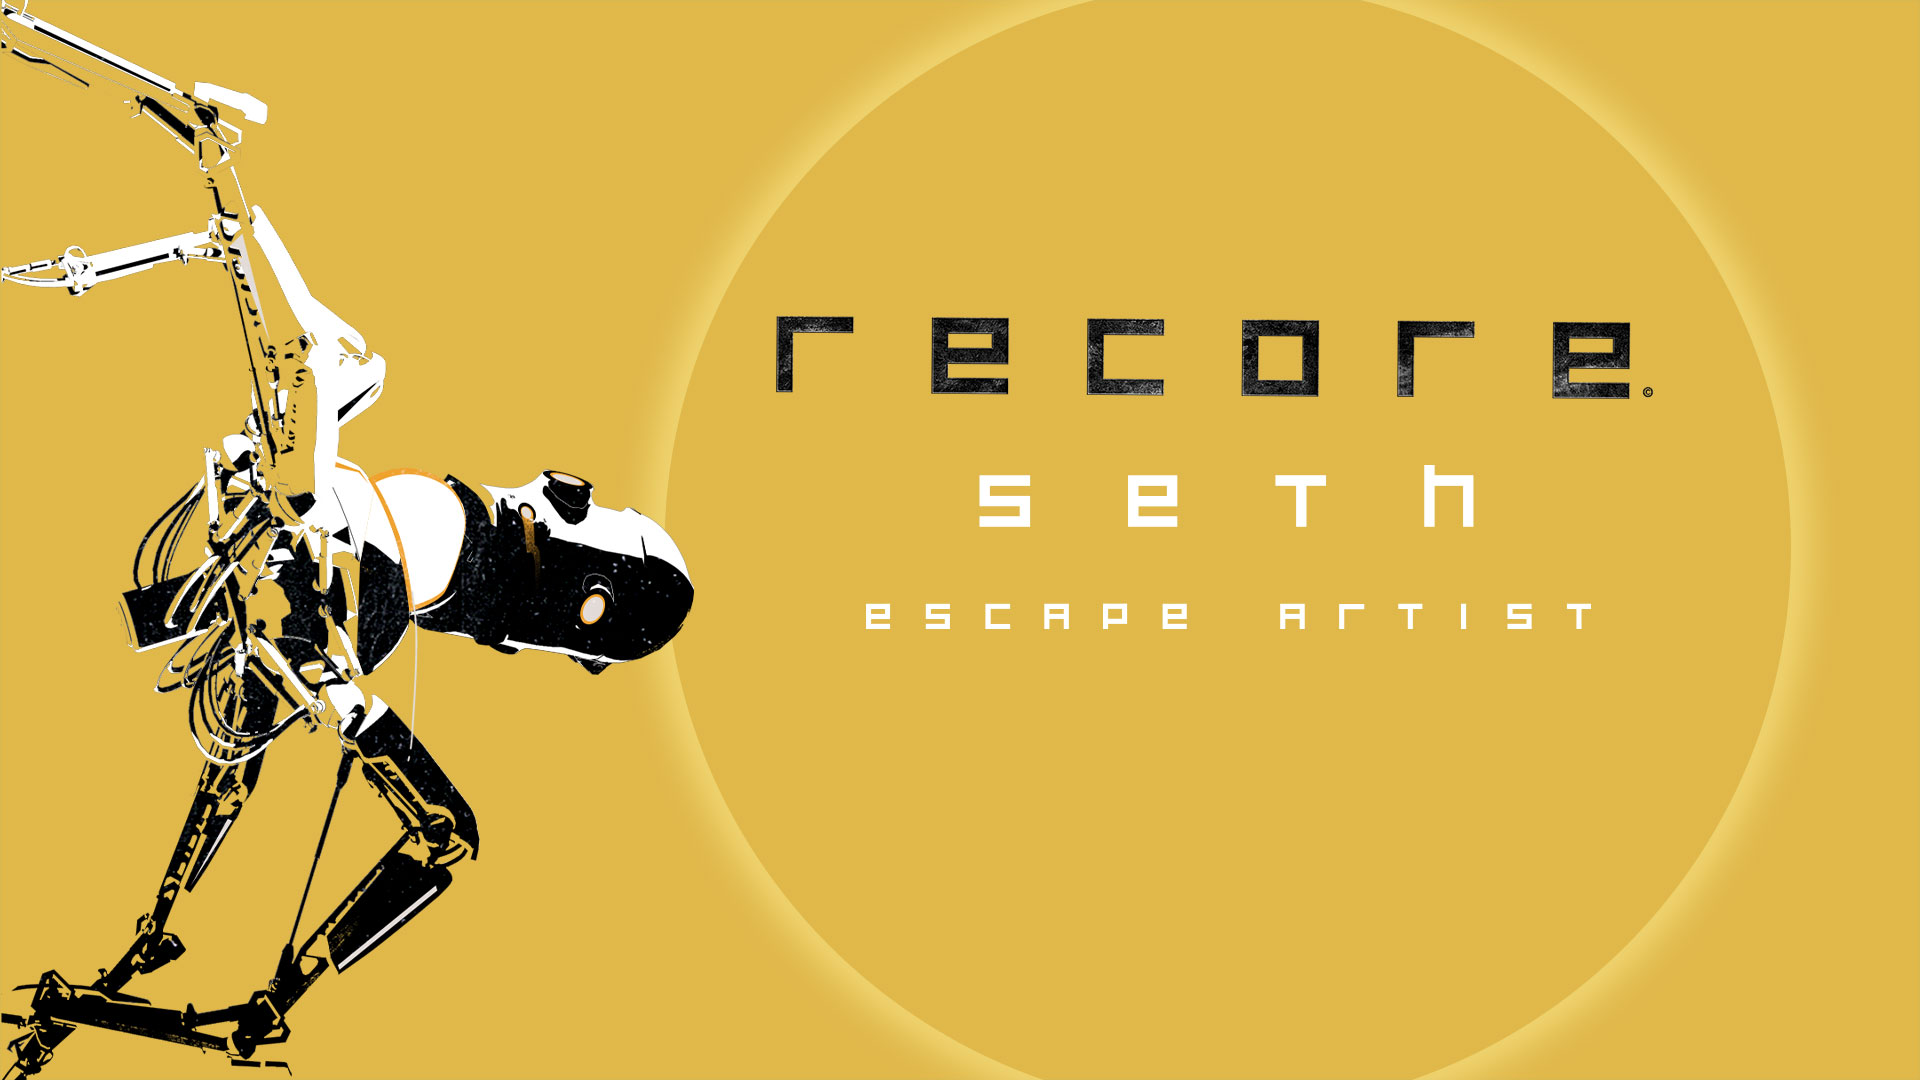 recore | meet seth: wallpapers